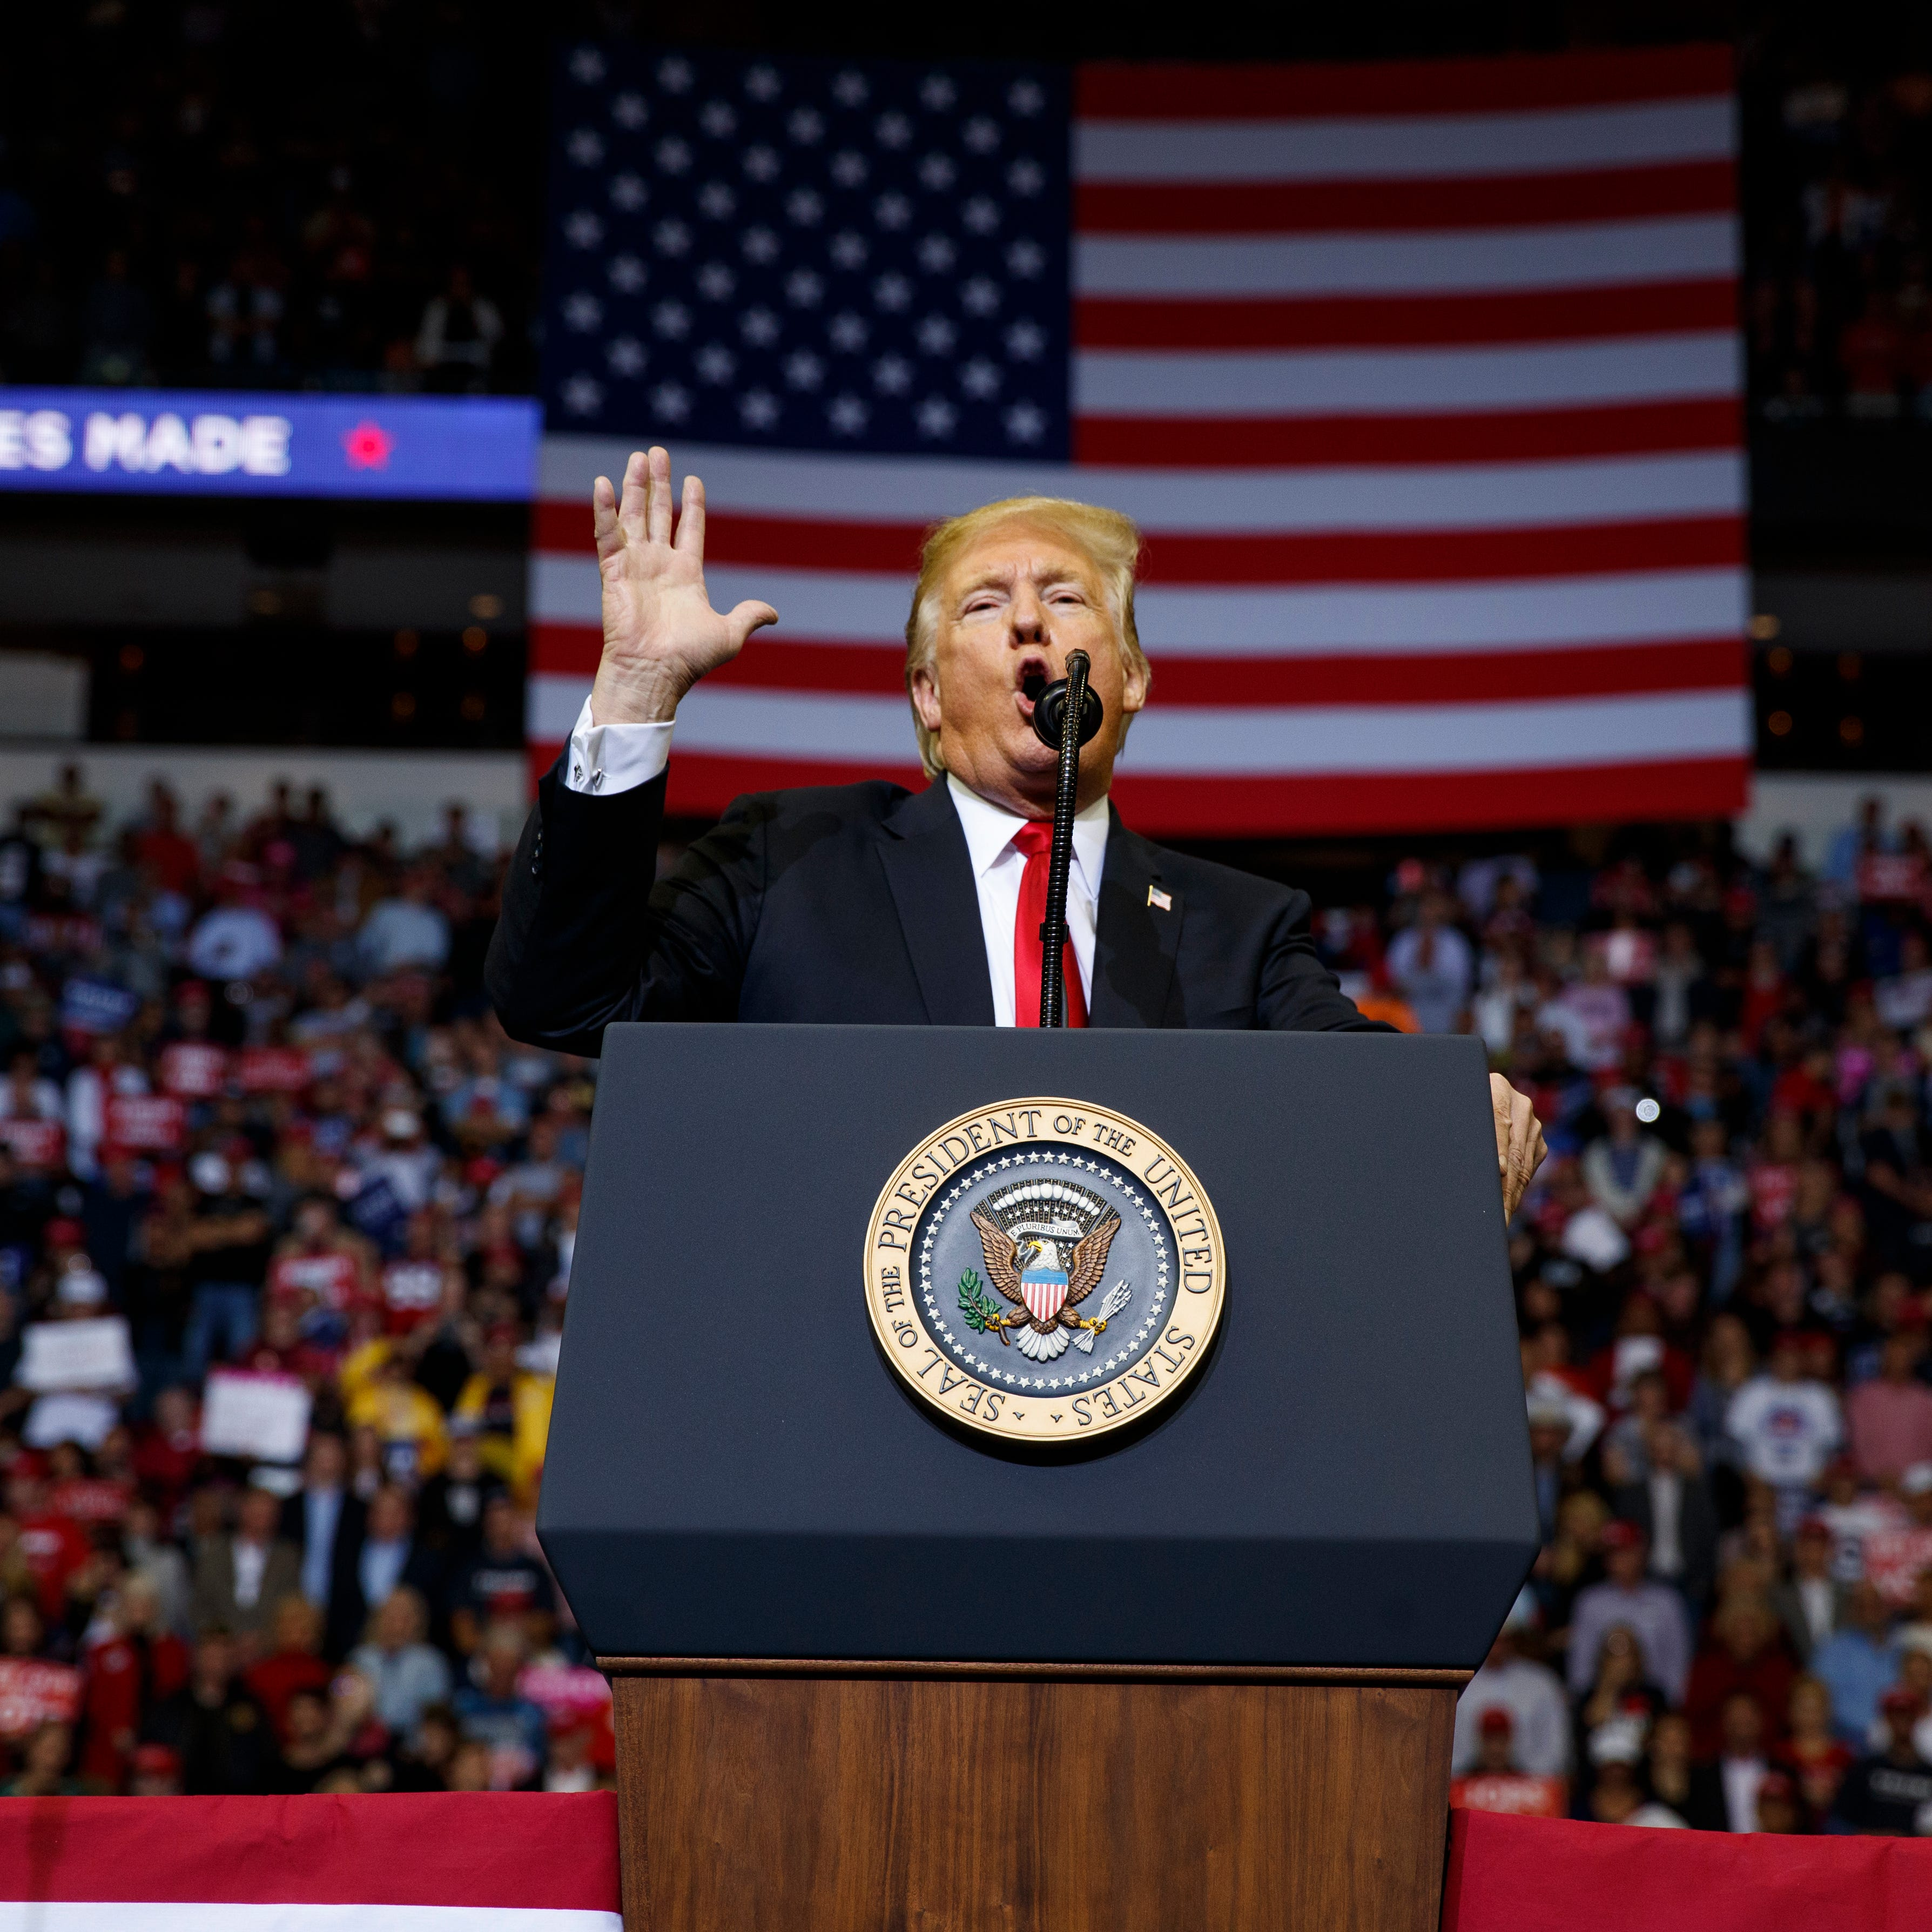 President Donald Trump speaks during a campaign rally for Sen. Ted Cruz, R-Texas, at Houston Toyota Center, Monday, Oct. 22, 2018, in Houston. (AP Photo/Evan Vucci)